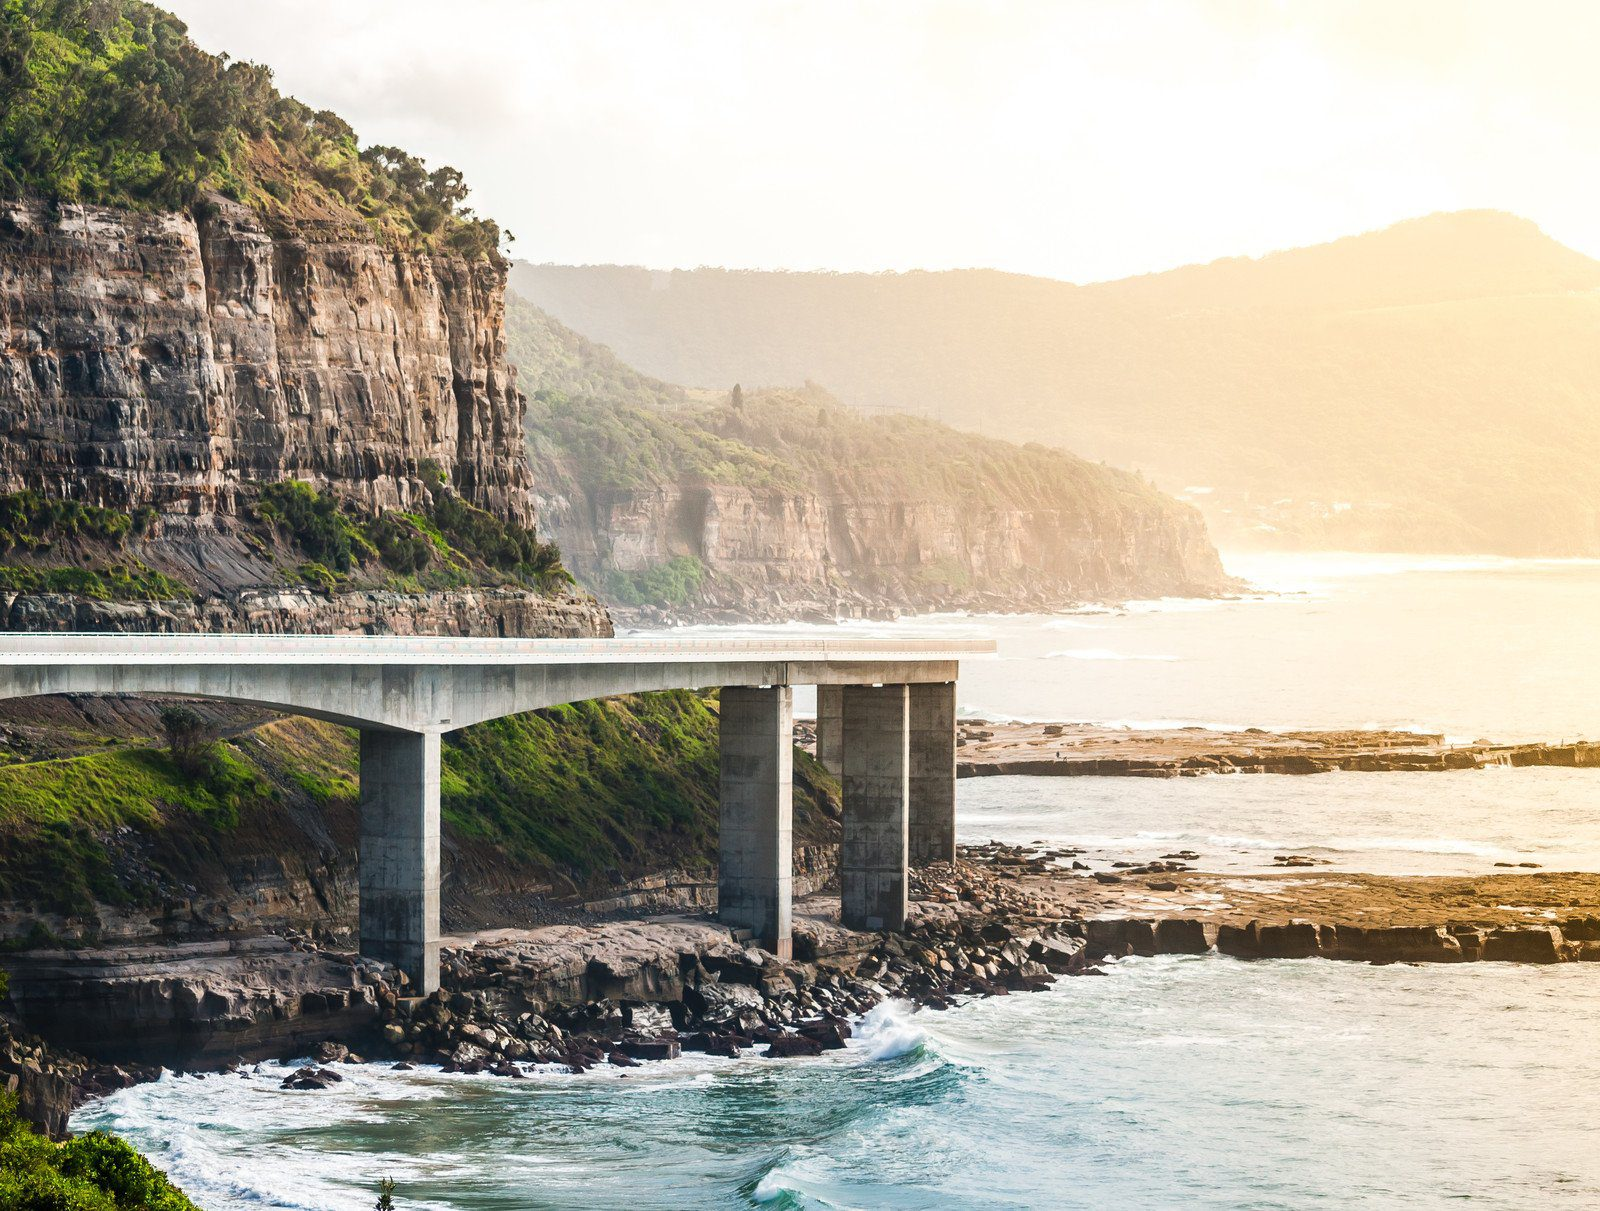 Sea Cliff Bridge near Sydney Australia